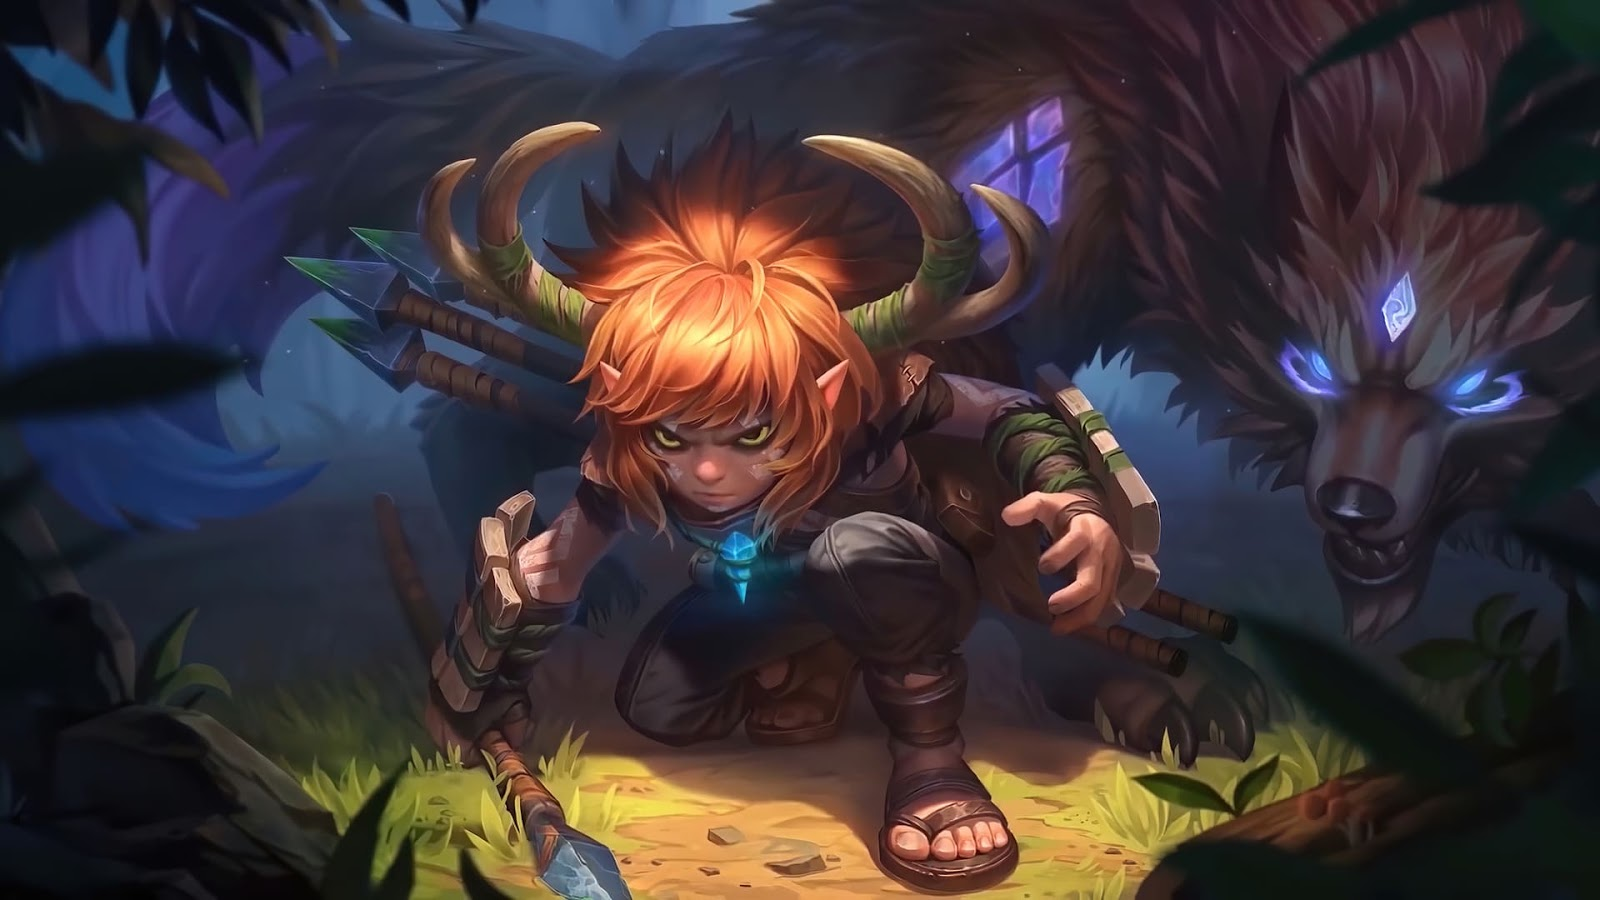 Wallpaper Popol and Kupa Hunting Pals Skin Mobile Legends HD for PC